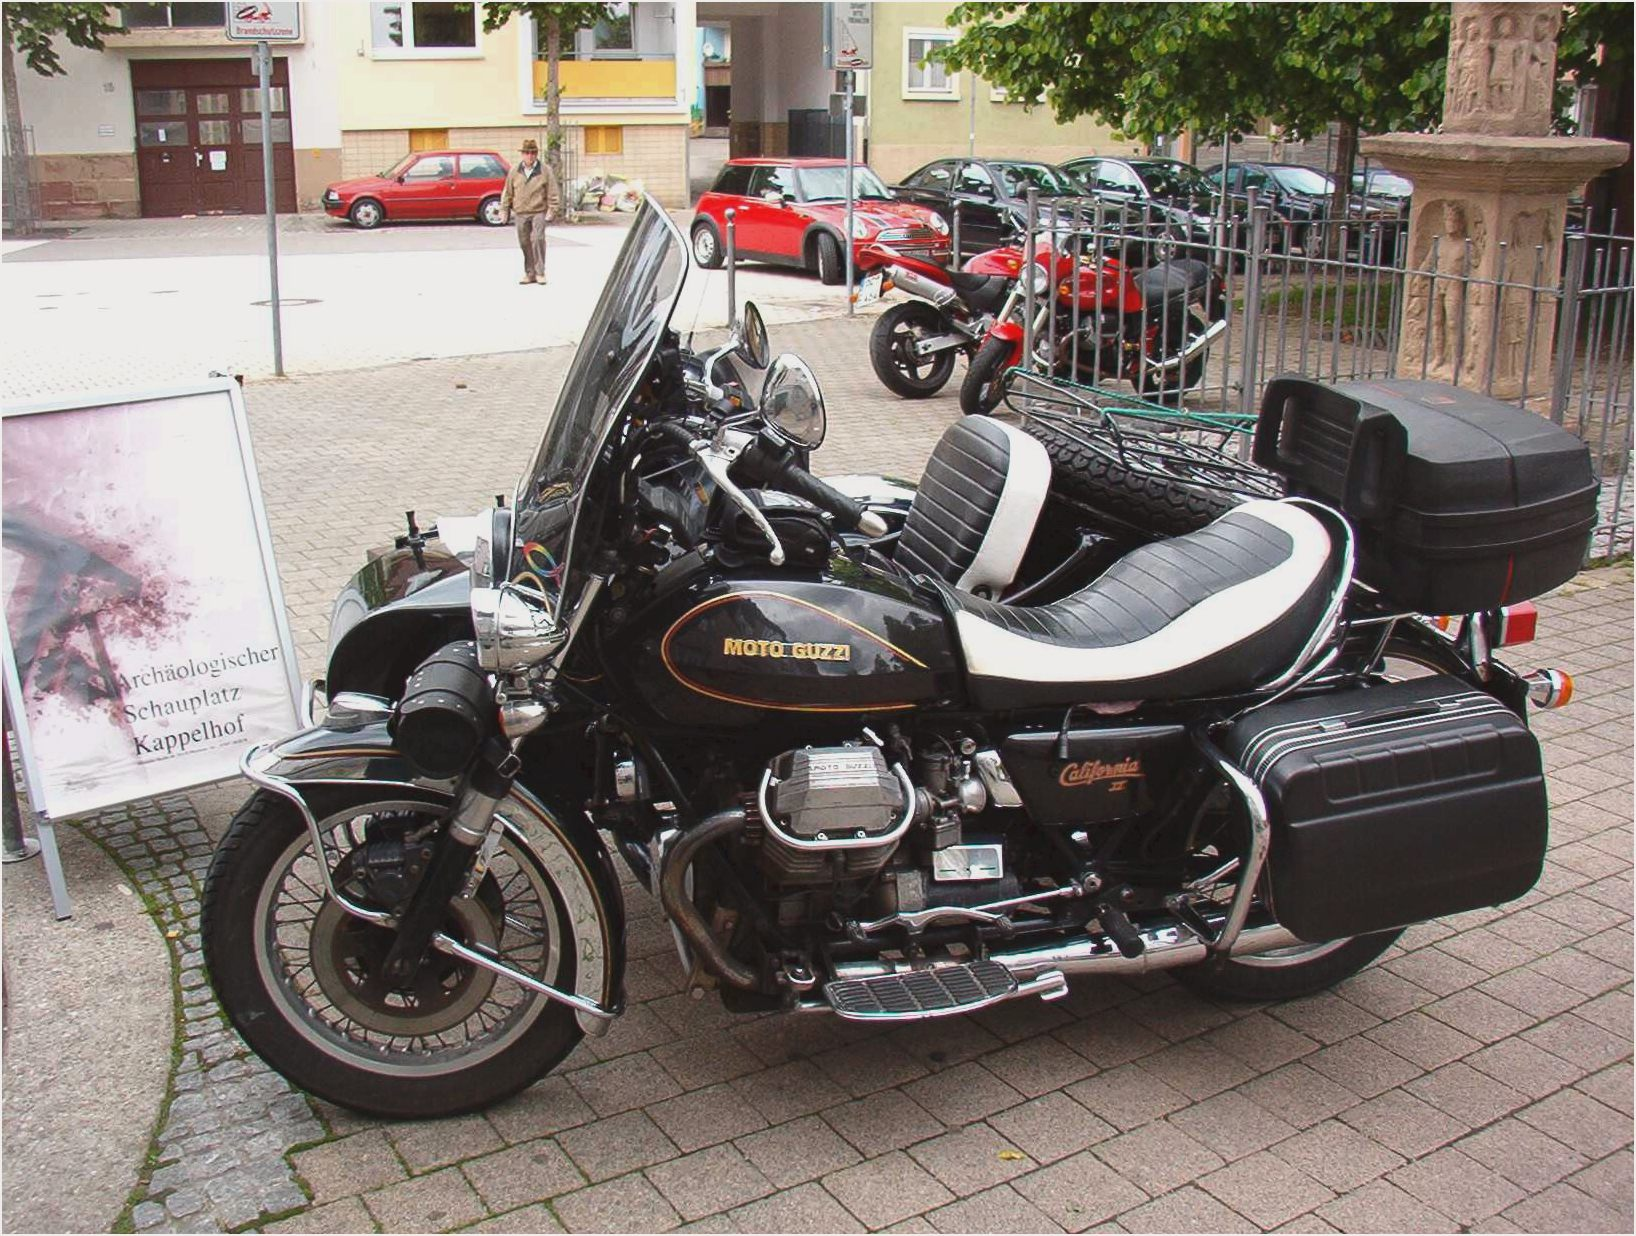 Moto Guzzi California II images #106769